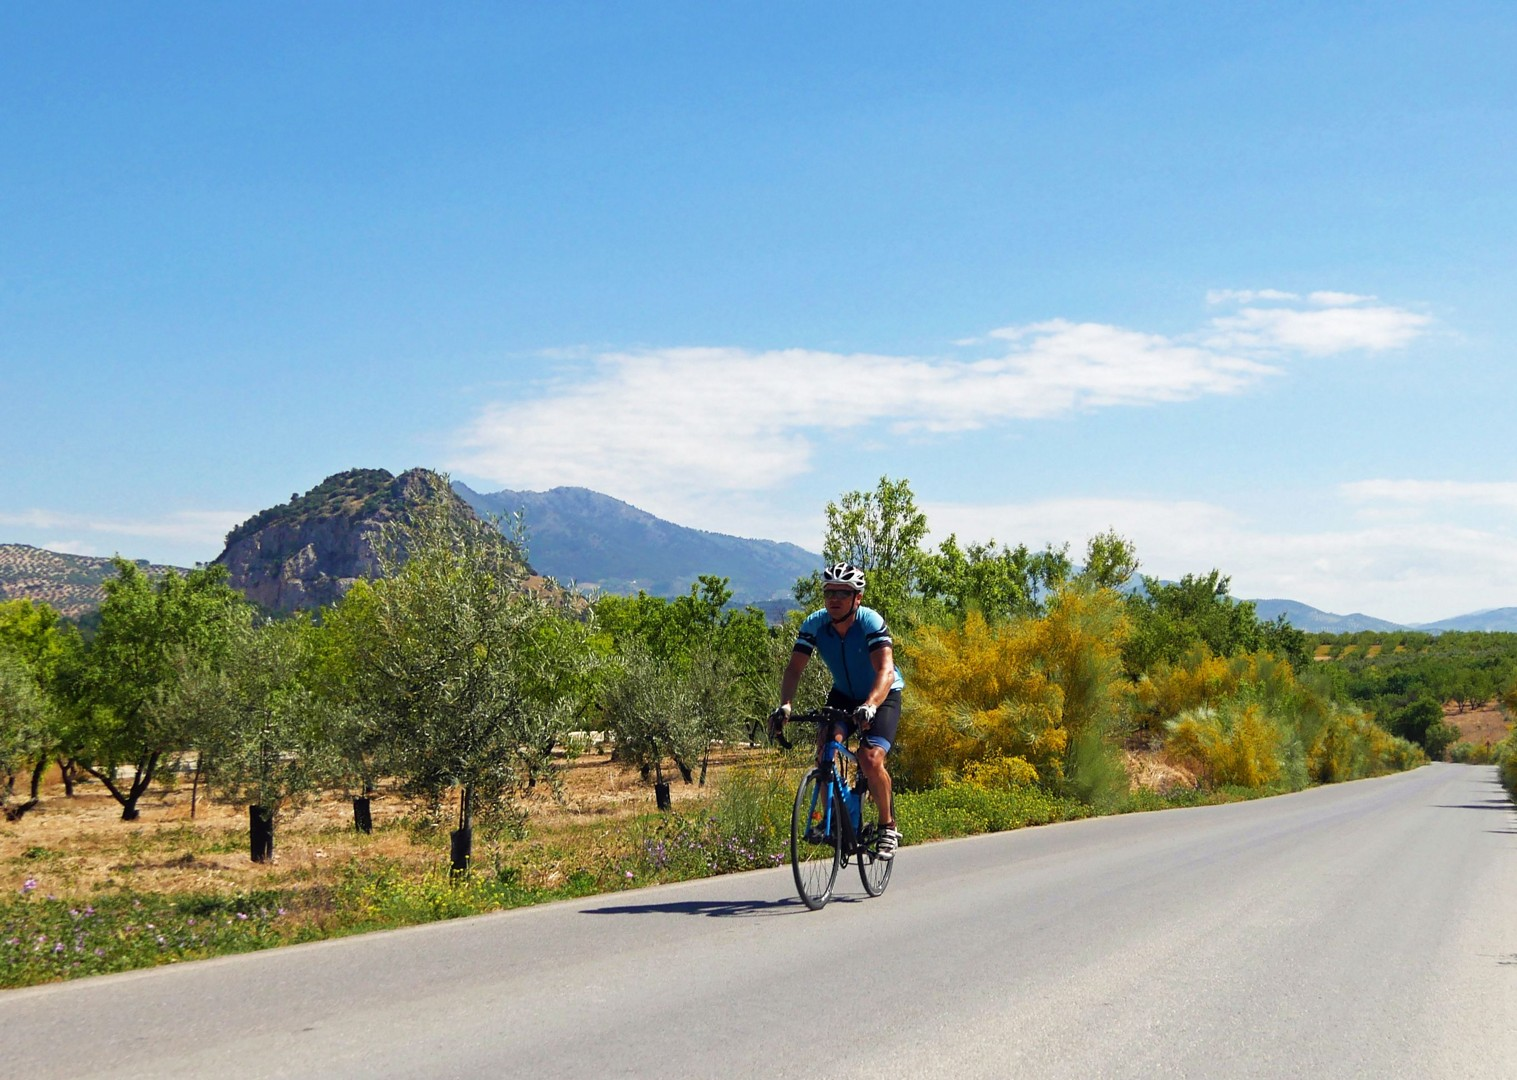 olive-groves-road-cycling-holiday-spain.jpg - Spain - Del Norte al Sur - Basque Country to Andalucia - Guided Road Cycling Holiday - Road Cycling